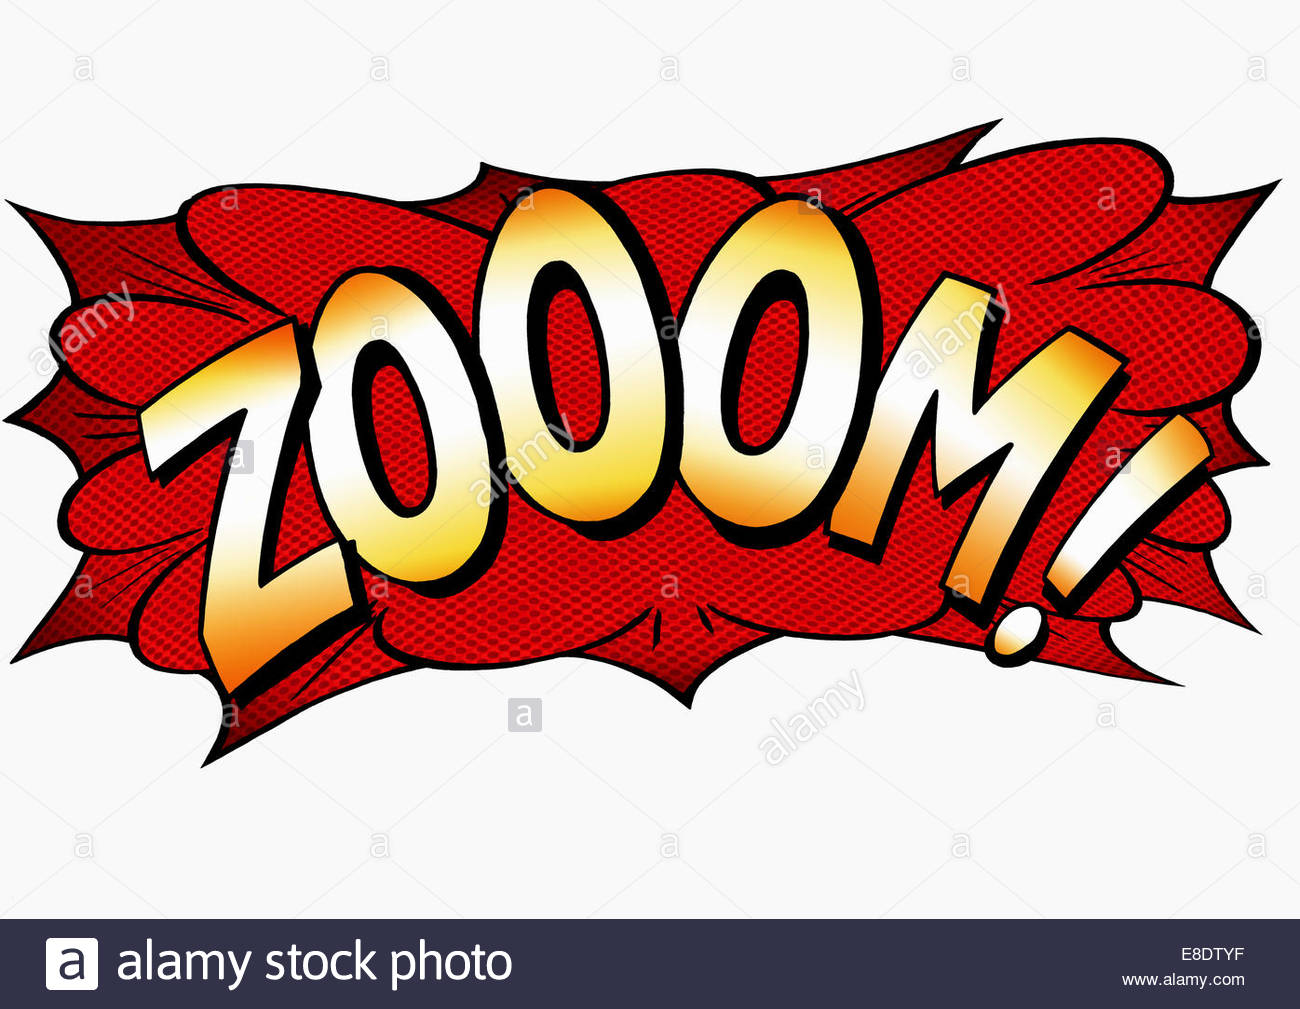 Zoom Comic Book Text Sound Effect Stock Photo 74063683